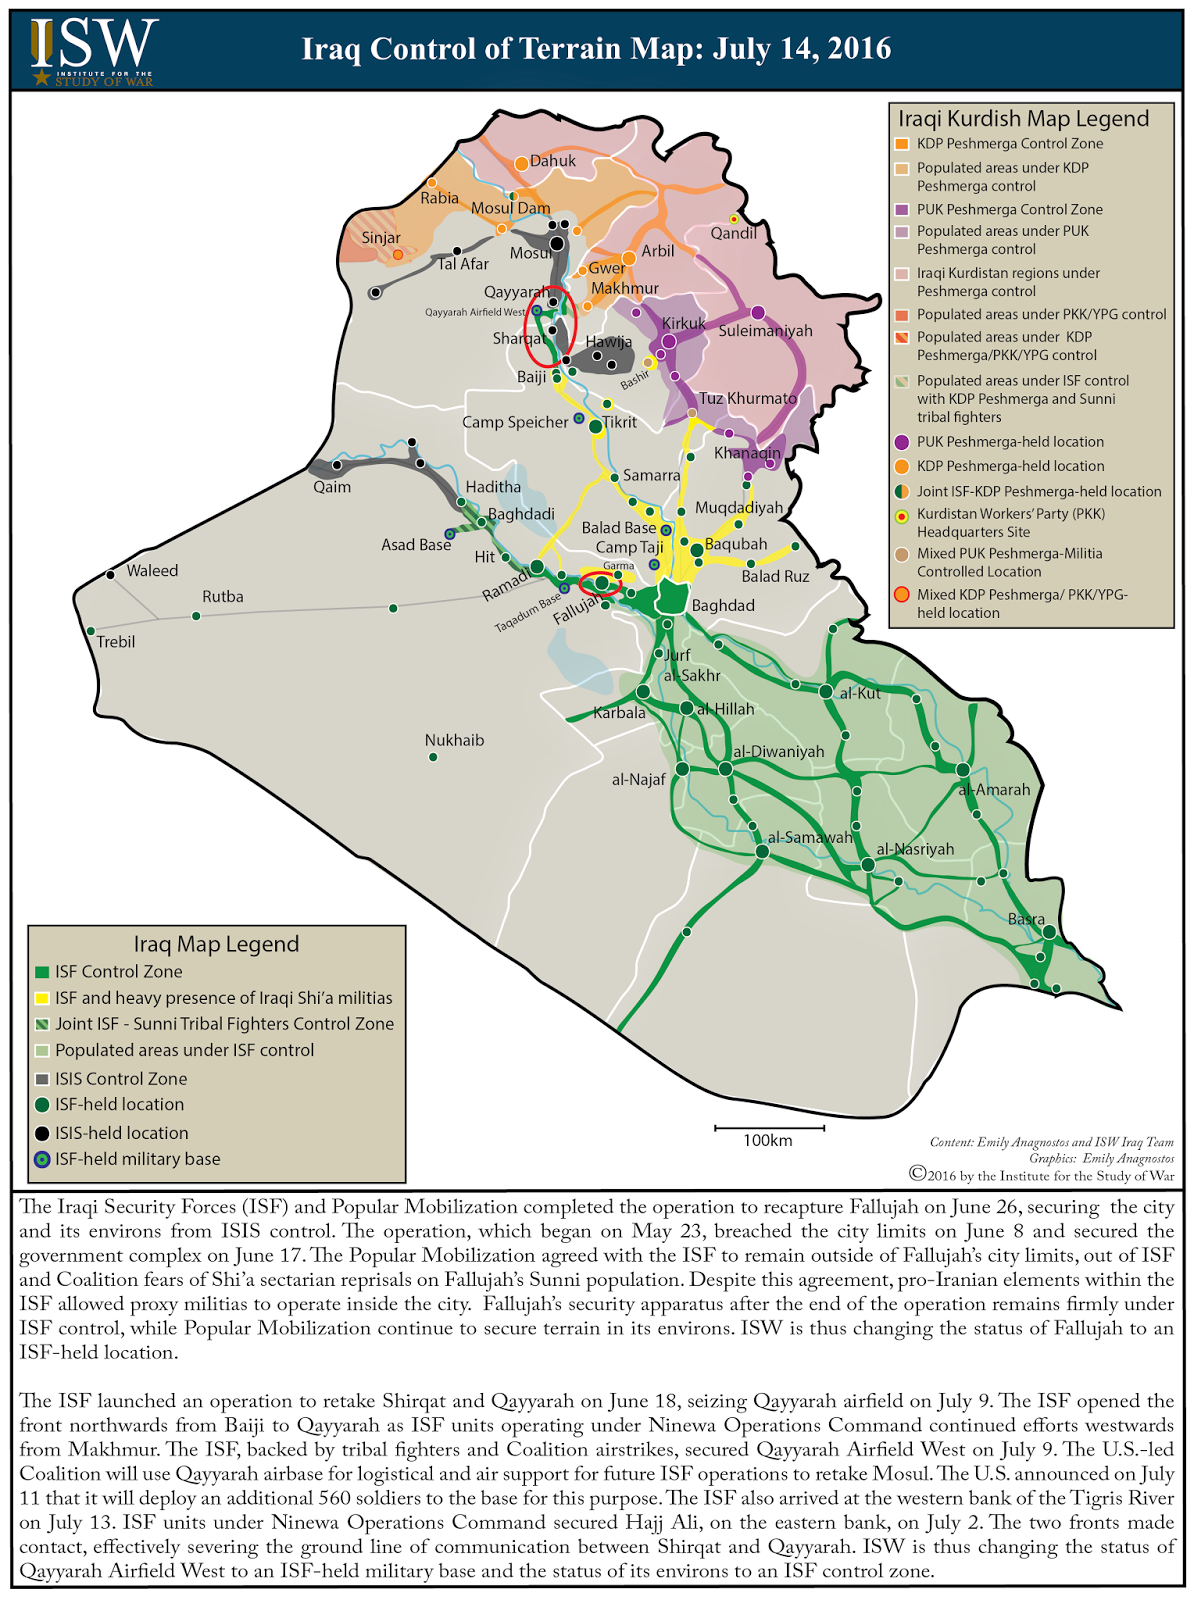 ISW Blog: Iraq Control of Terrain Map: July 14, 2016